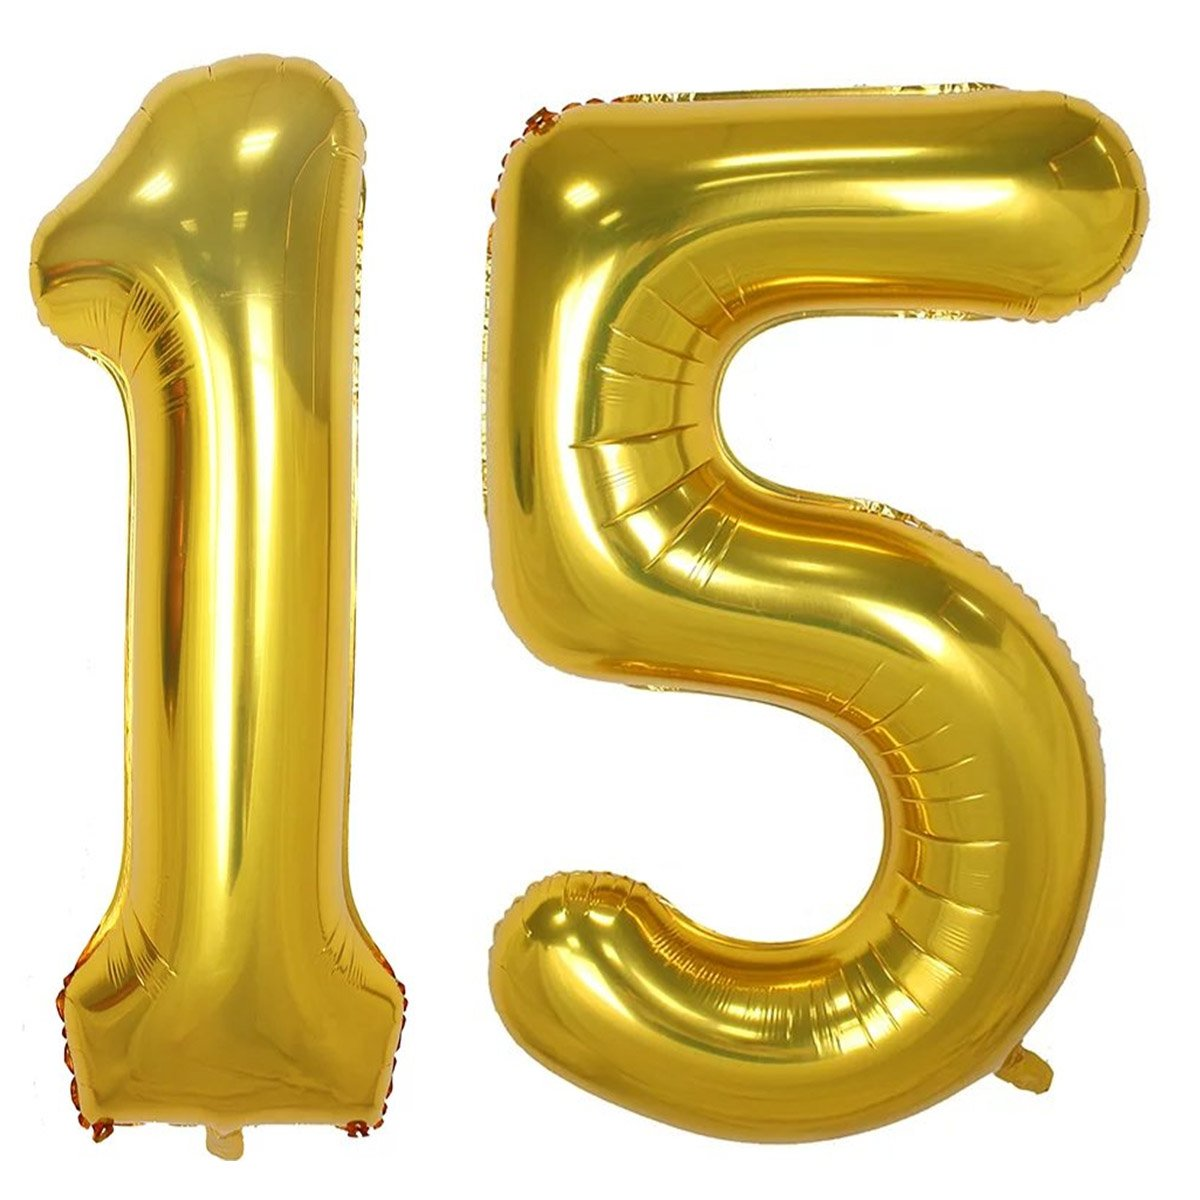 100cm Gold Foil 15 Helium Jumbo Digital Number Balloons, 15th Birthday Decoration for Girls or Boys, sweet 15 Birthday Party Supplies   B07BFB87XL